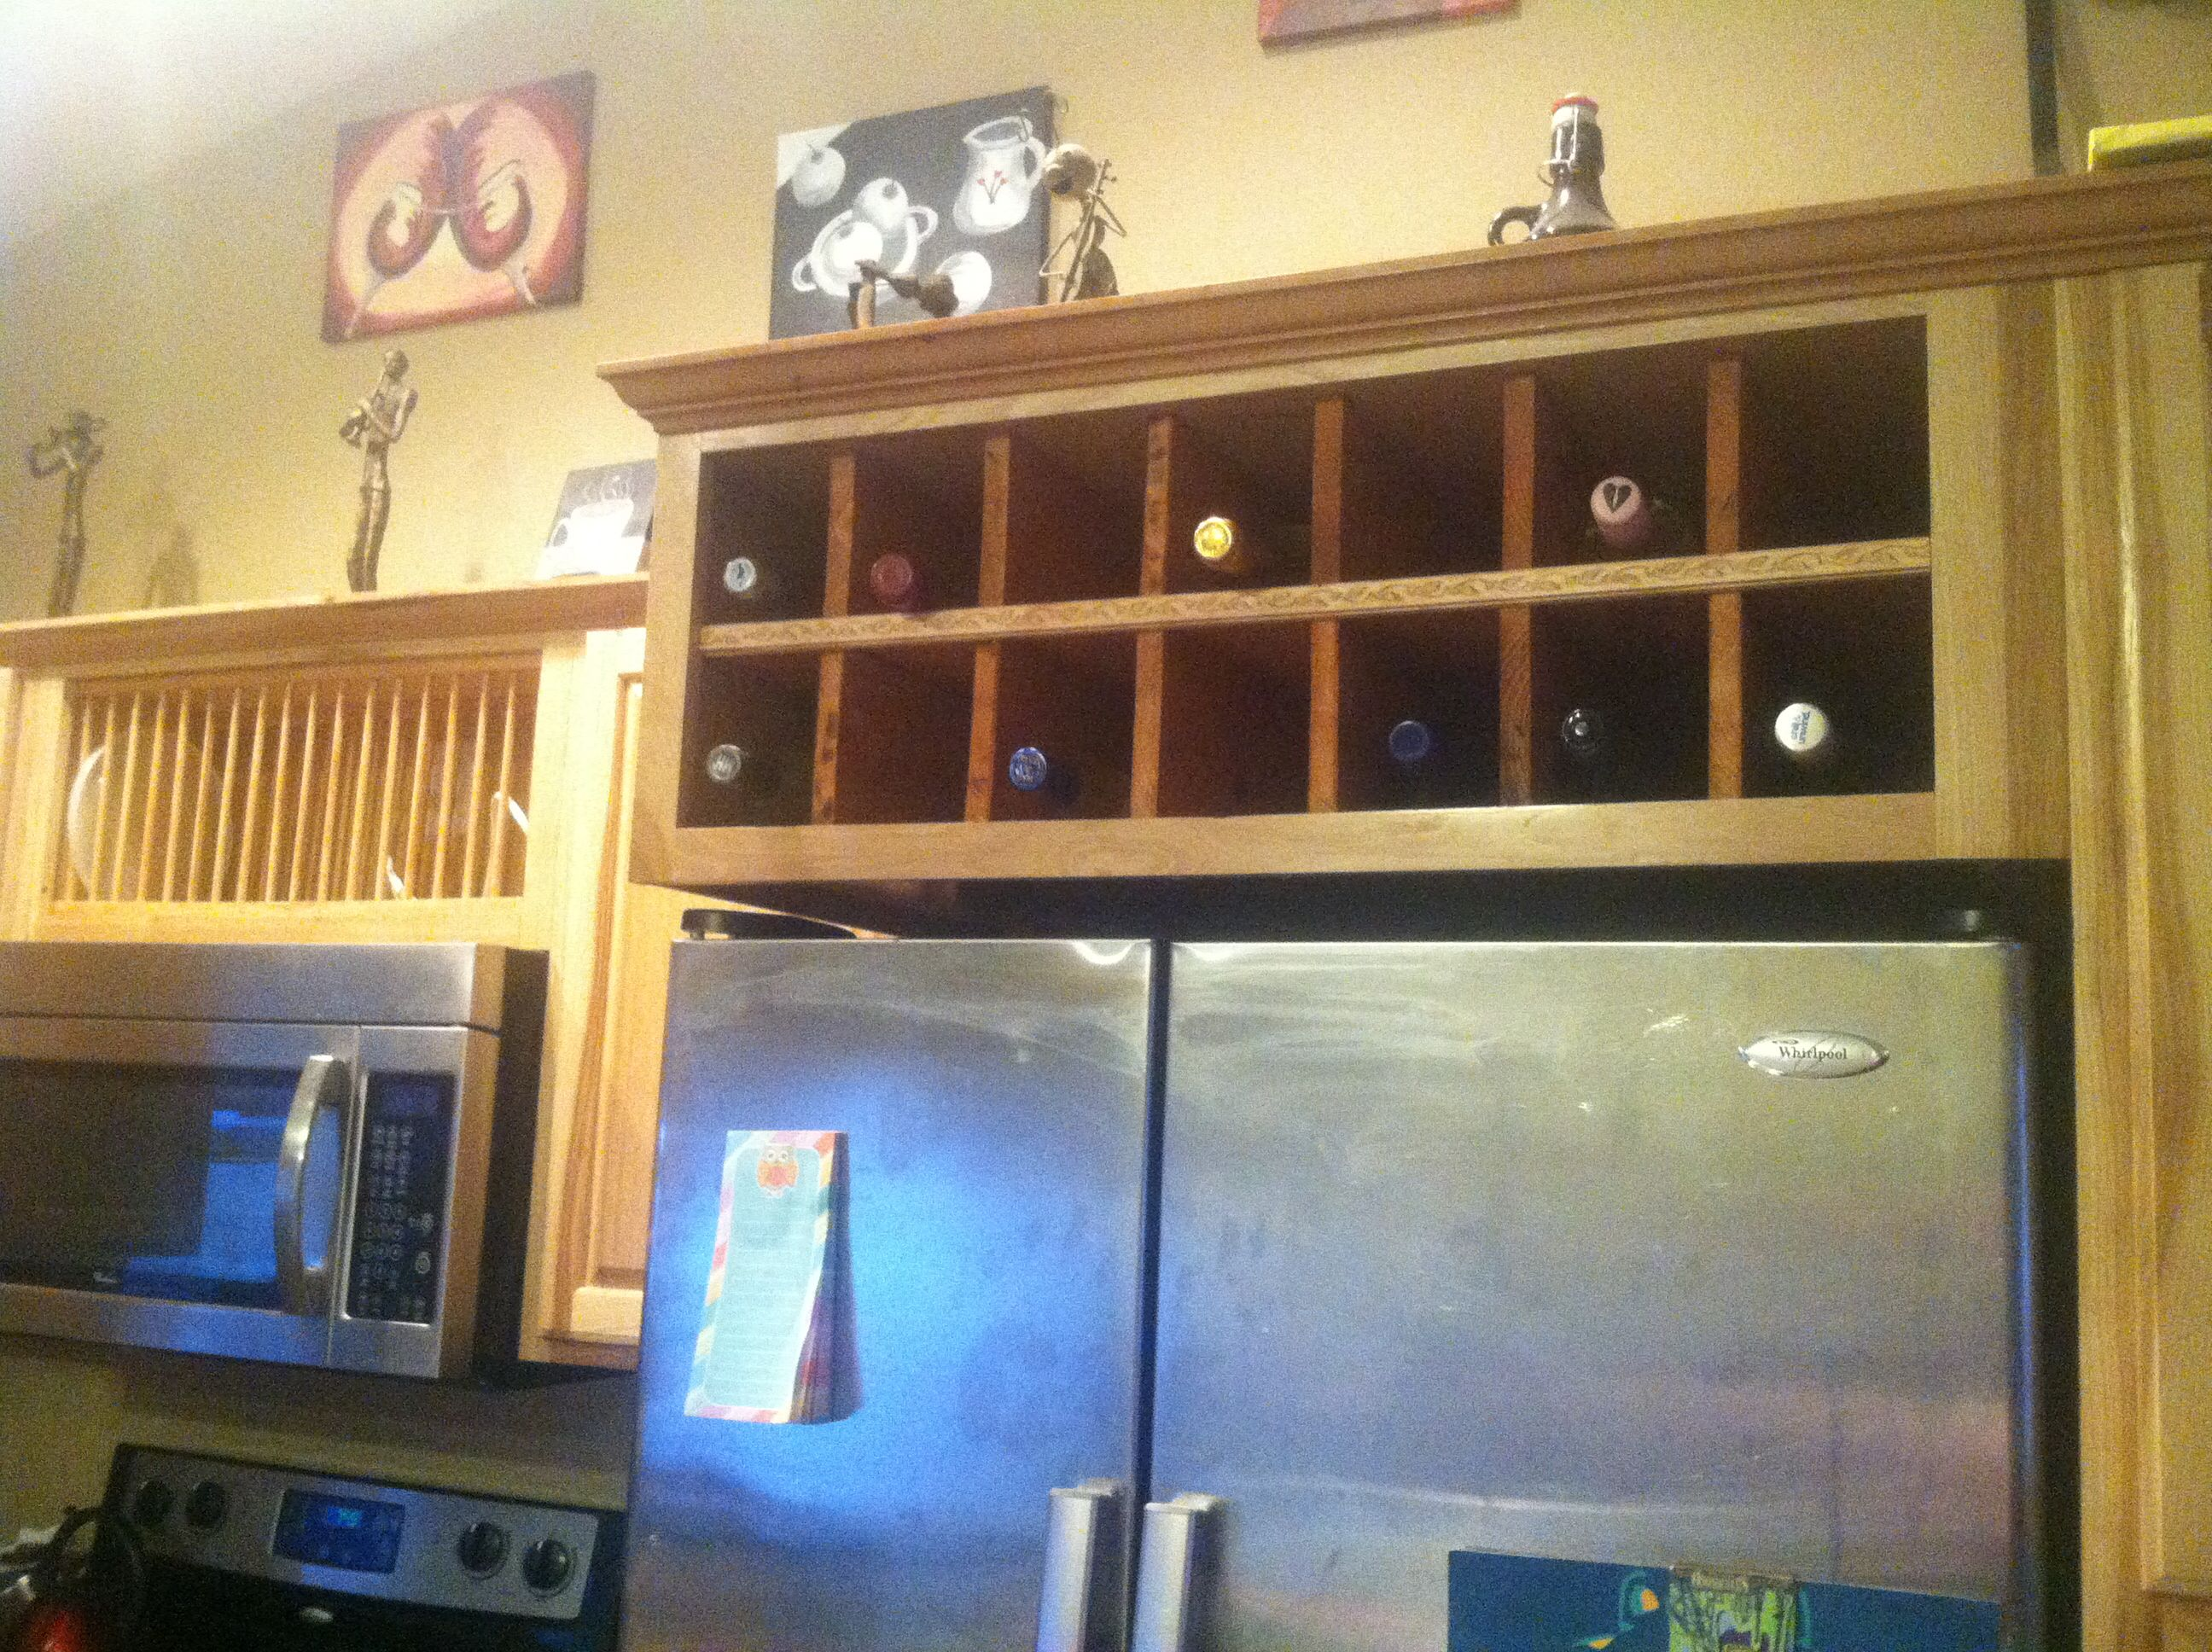 I replaced the cabinet above the fridge with a wine rack and the one